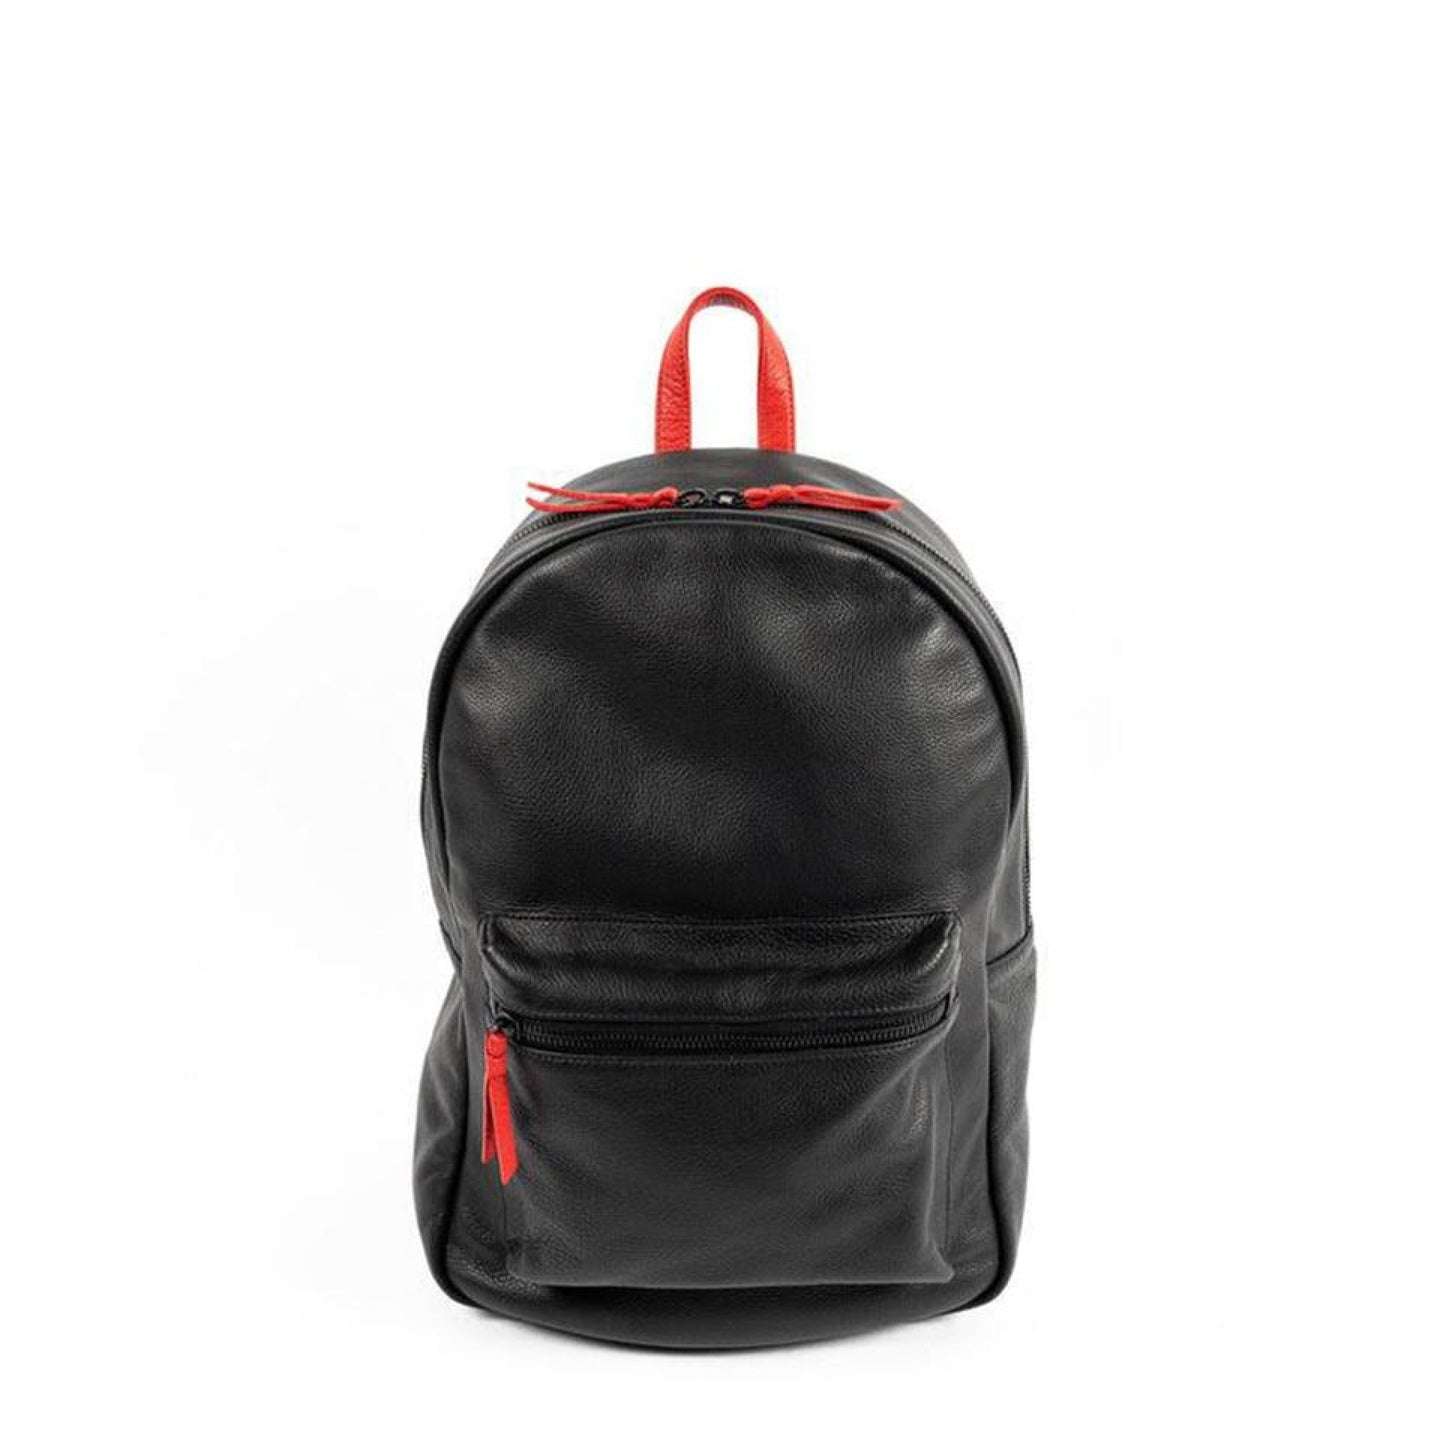 Backpack - Jet Black (A1) - Backpack | Made By Alex